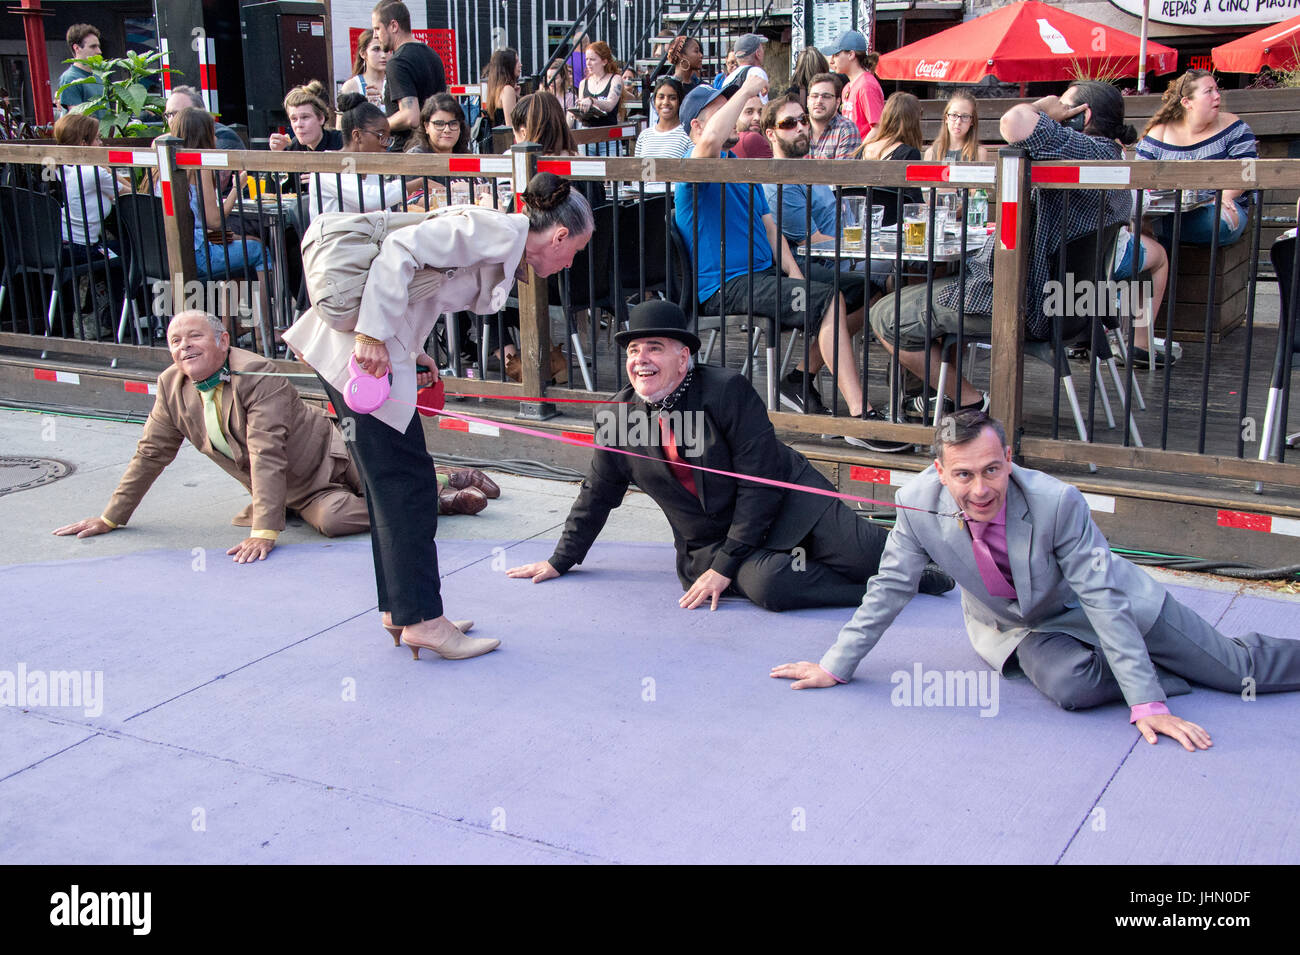 Montreal, Canada - 13 July 2017: Woman walking three men on dog leashes during Montreal Circus Festival - Stock Image